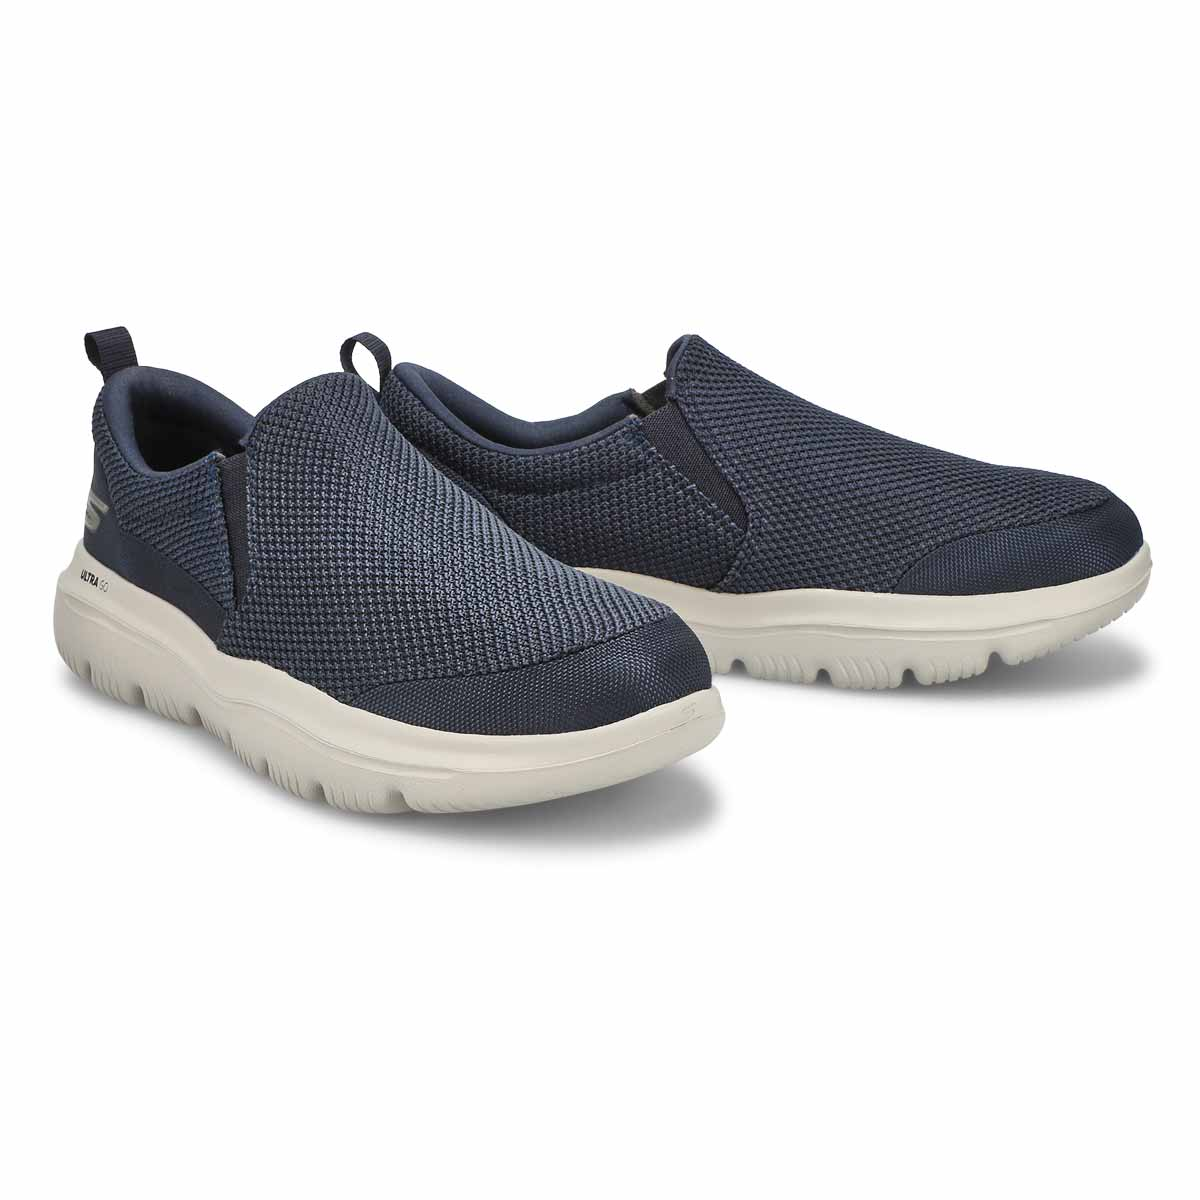 Mns GOwalk Ultra Impeccable nvy slip on